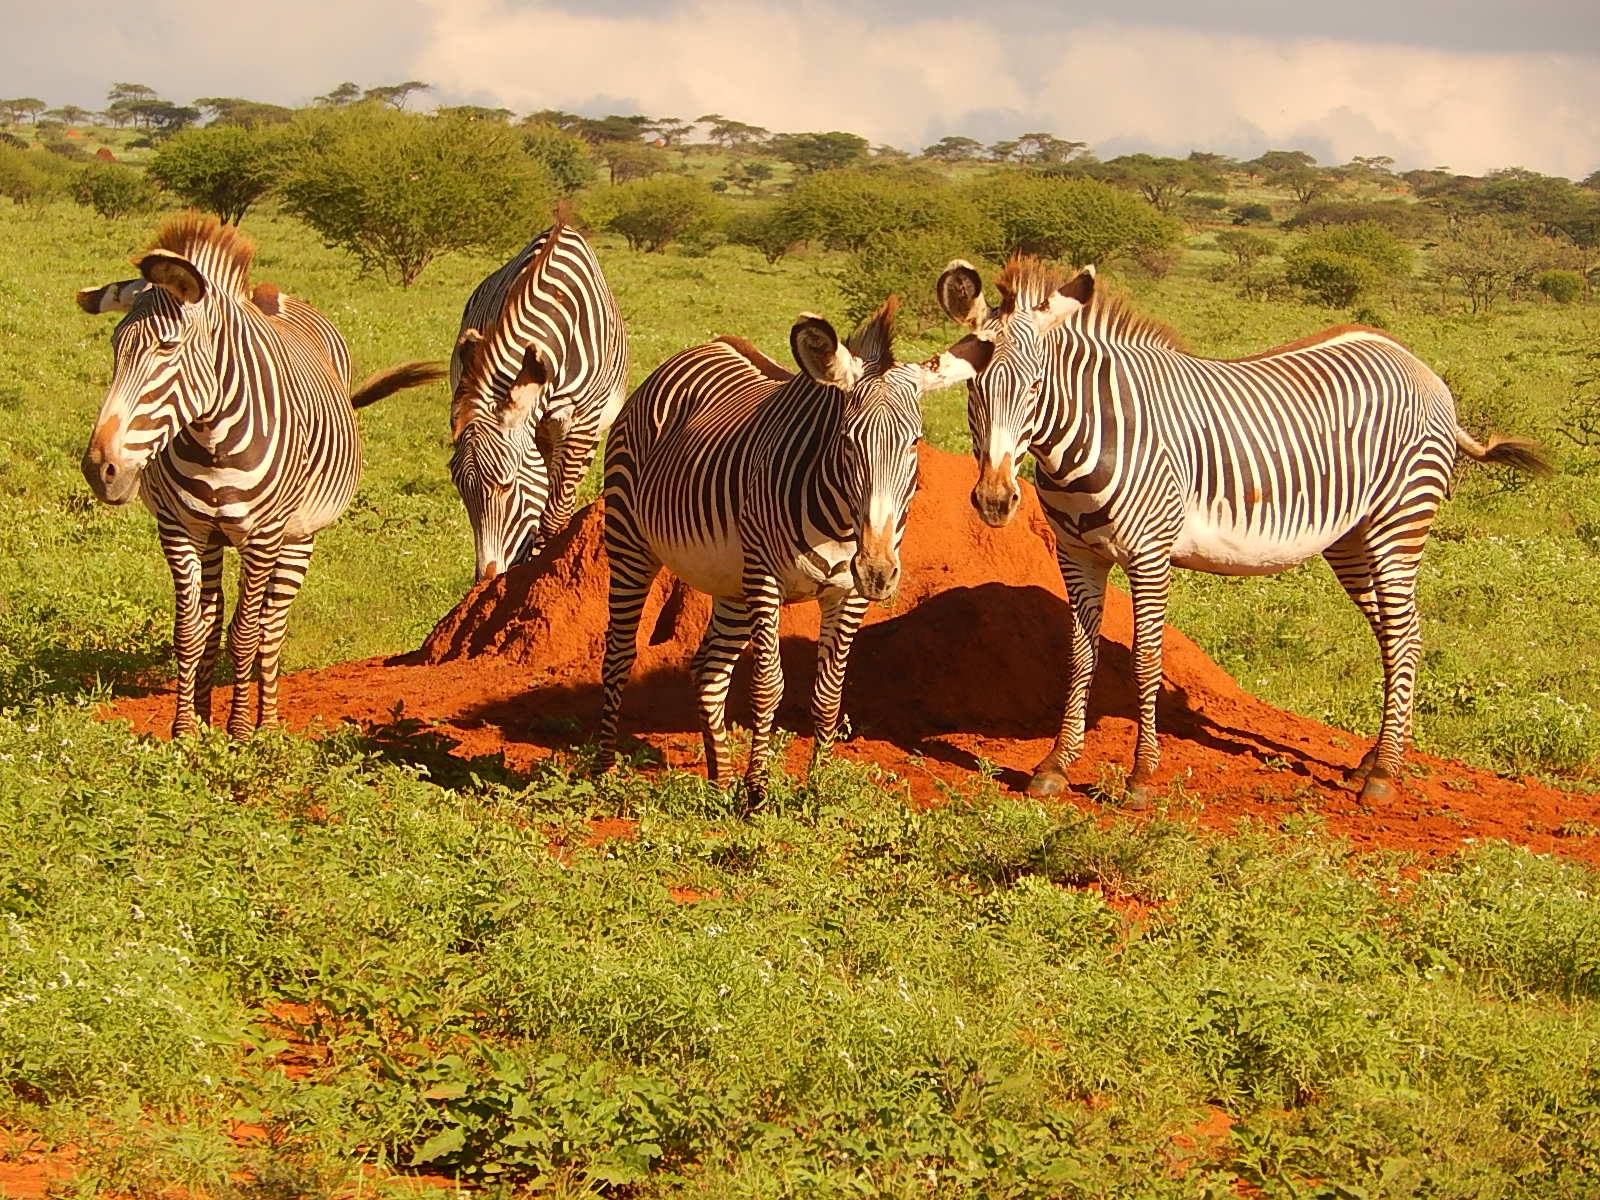 """Being a great source of the extra minerals that they need, termite mounds are valued commodities for Grevy's zebras."" Photo courtesy of Grevy's Zebra Trust"